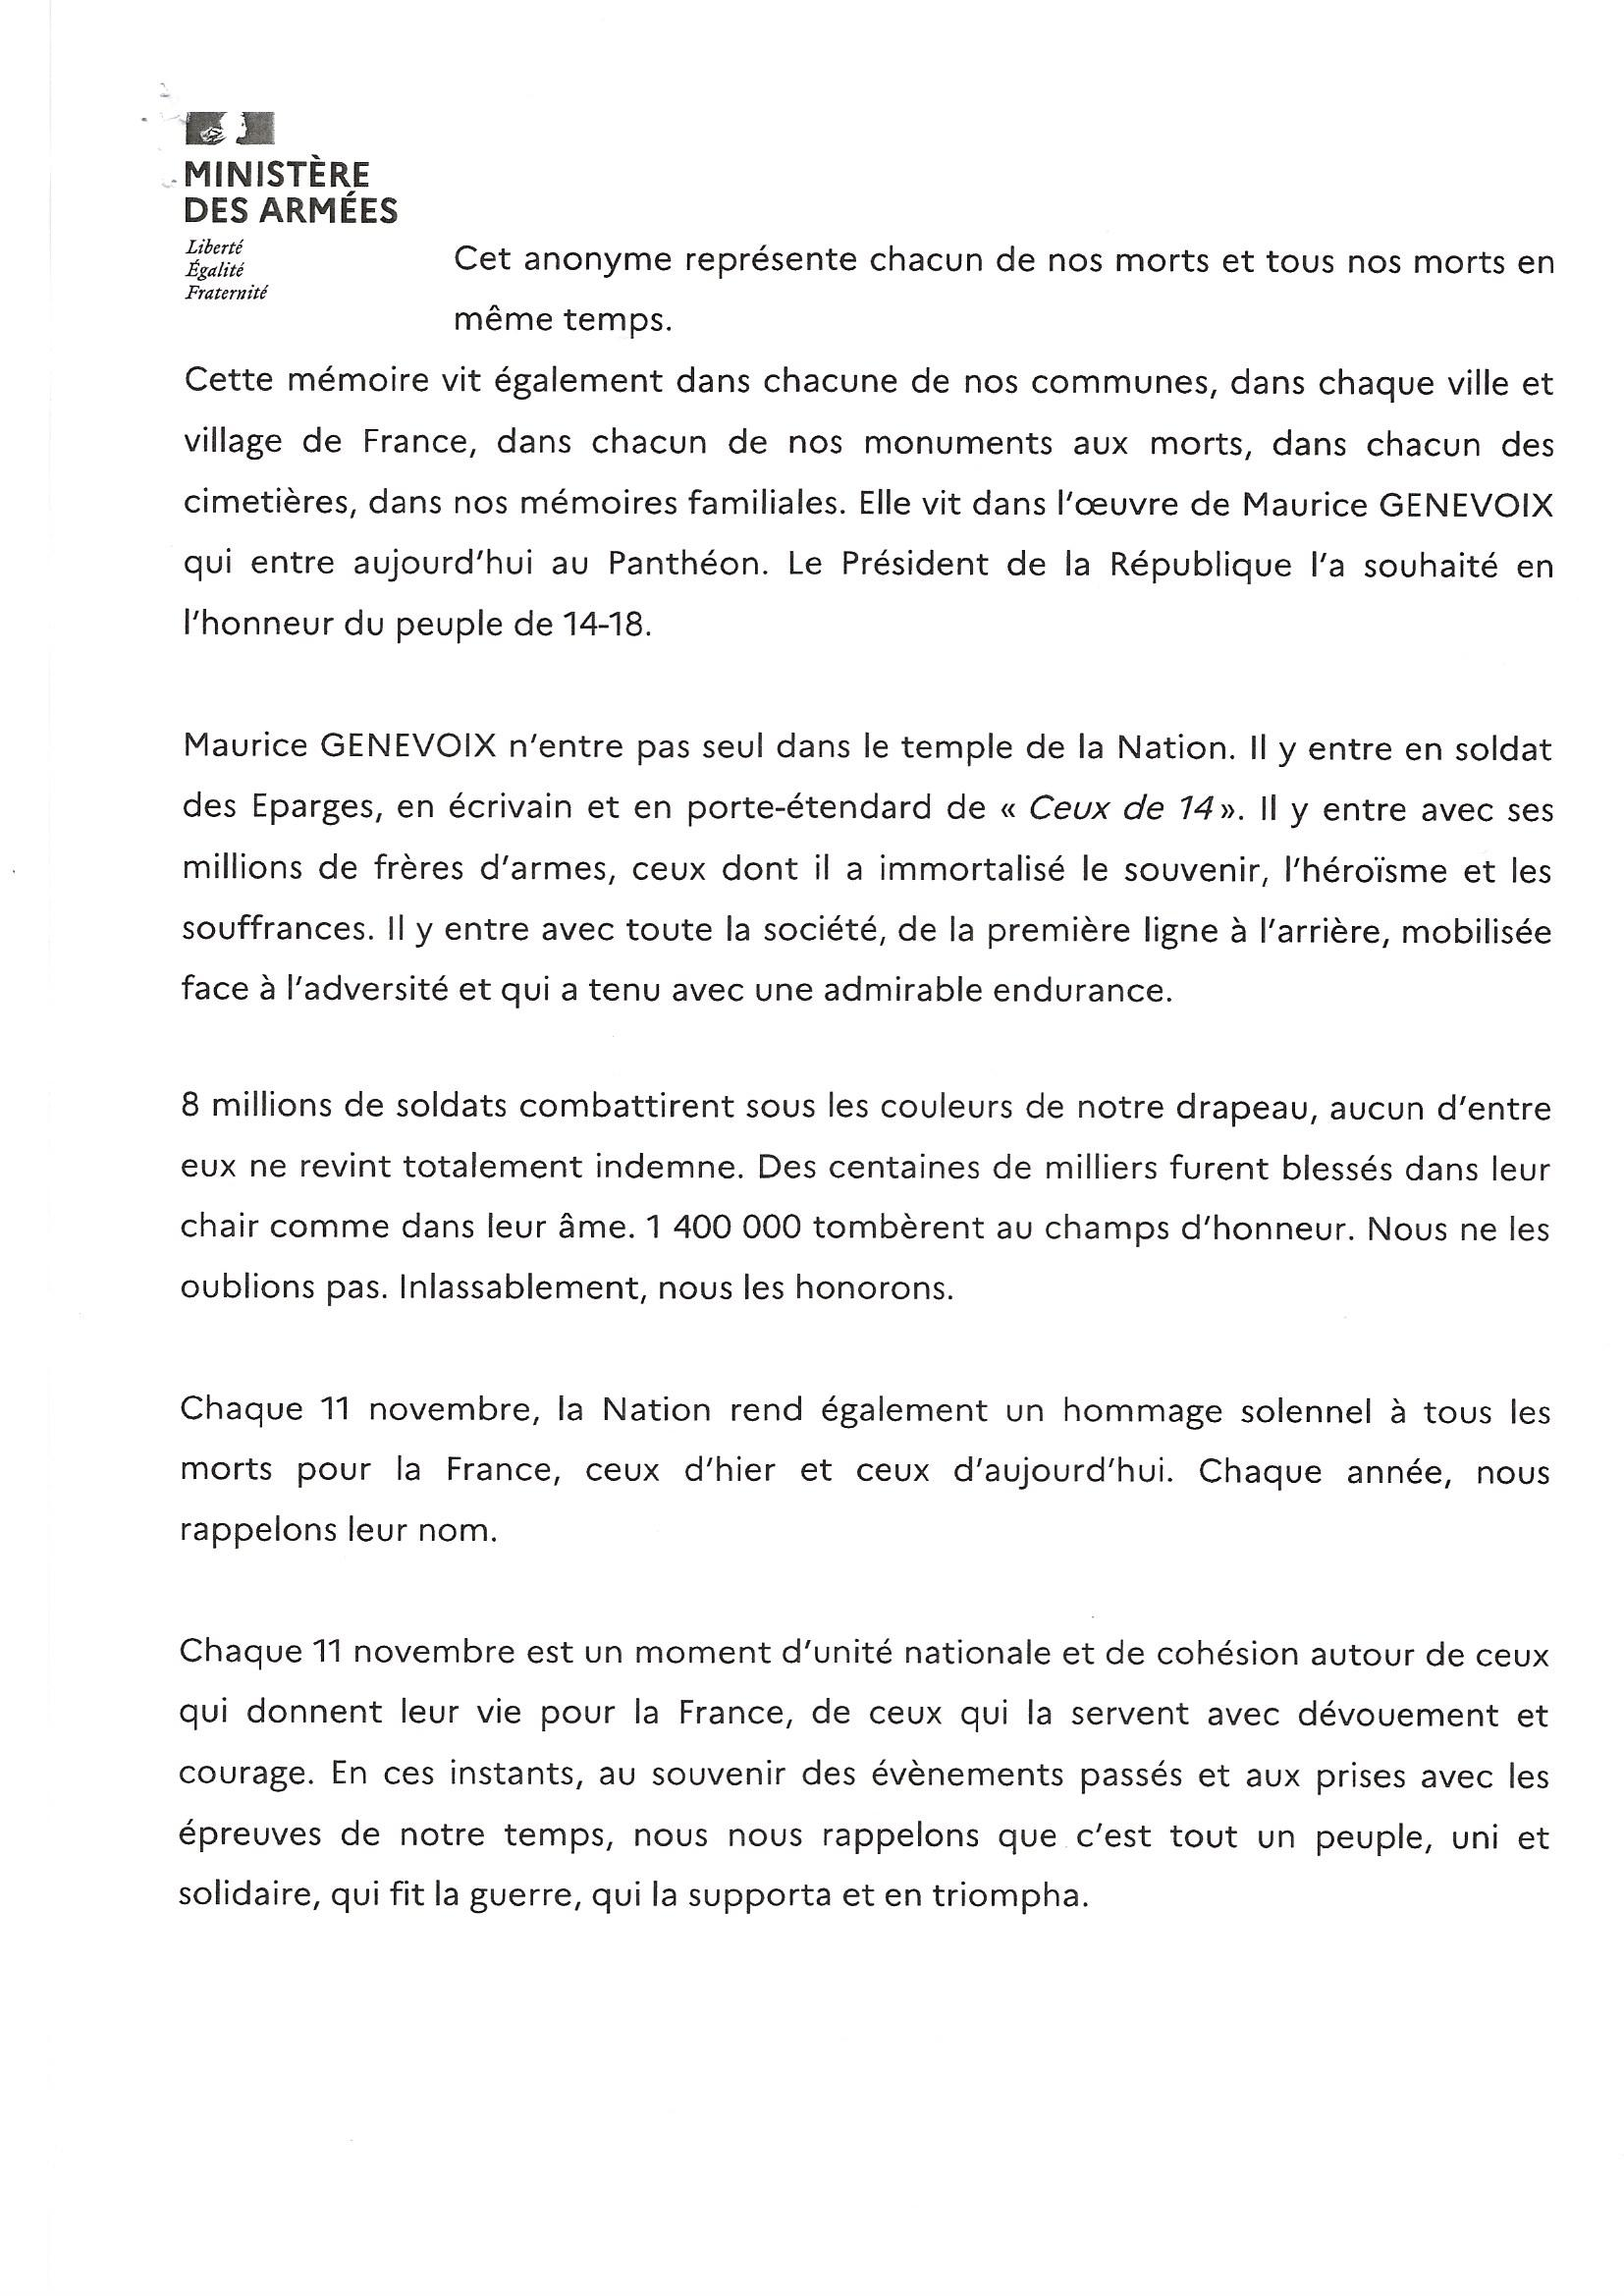 discours_0002